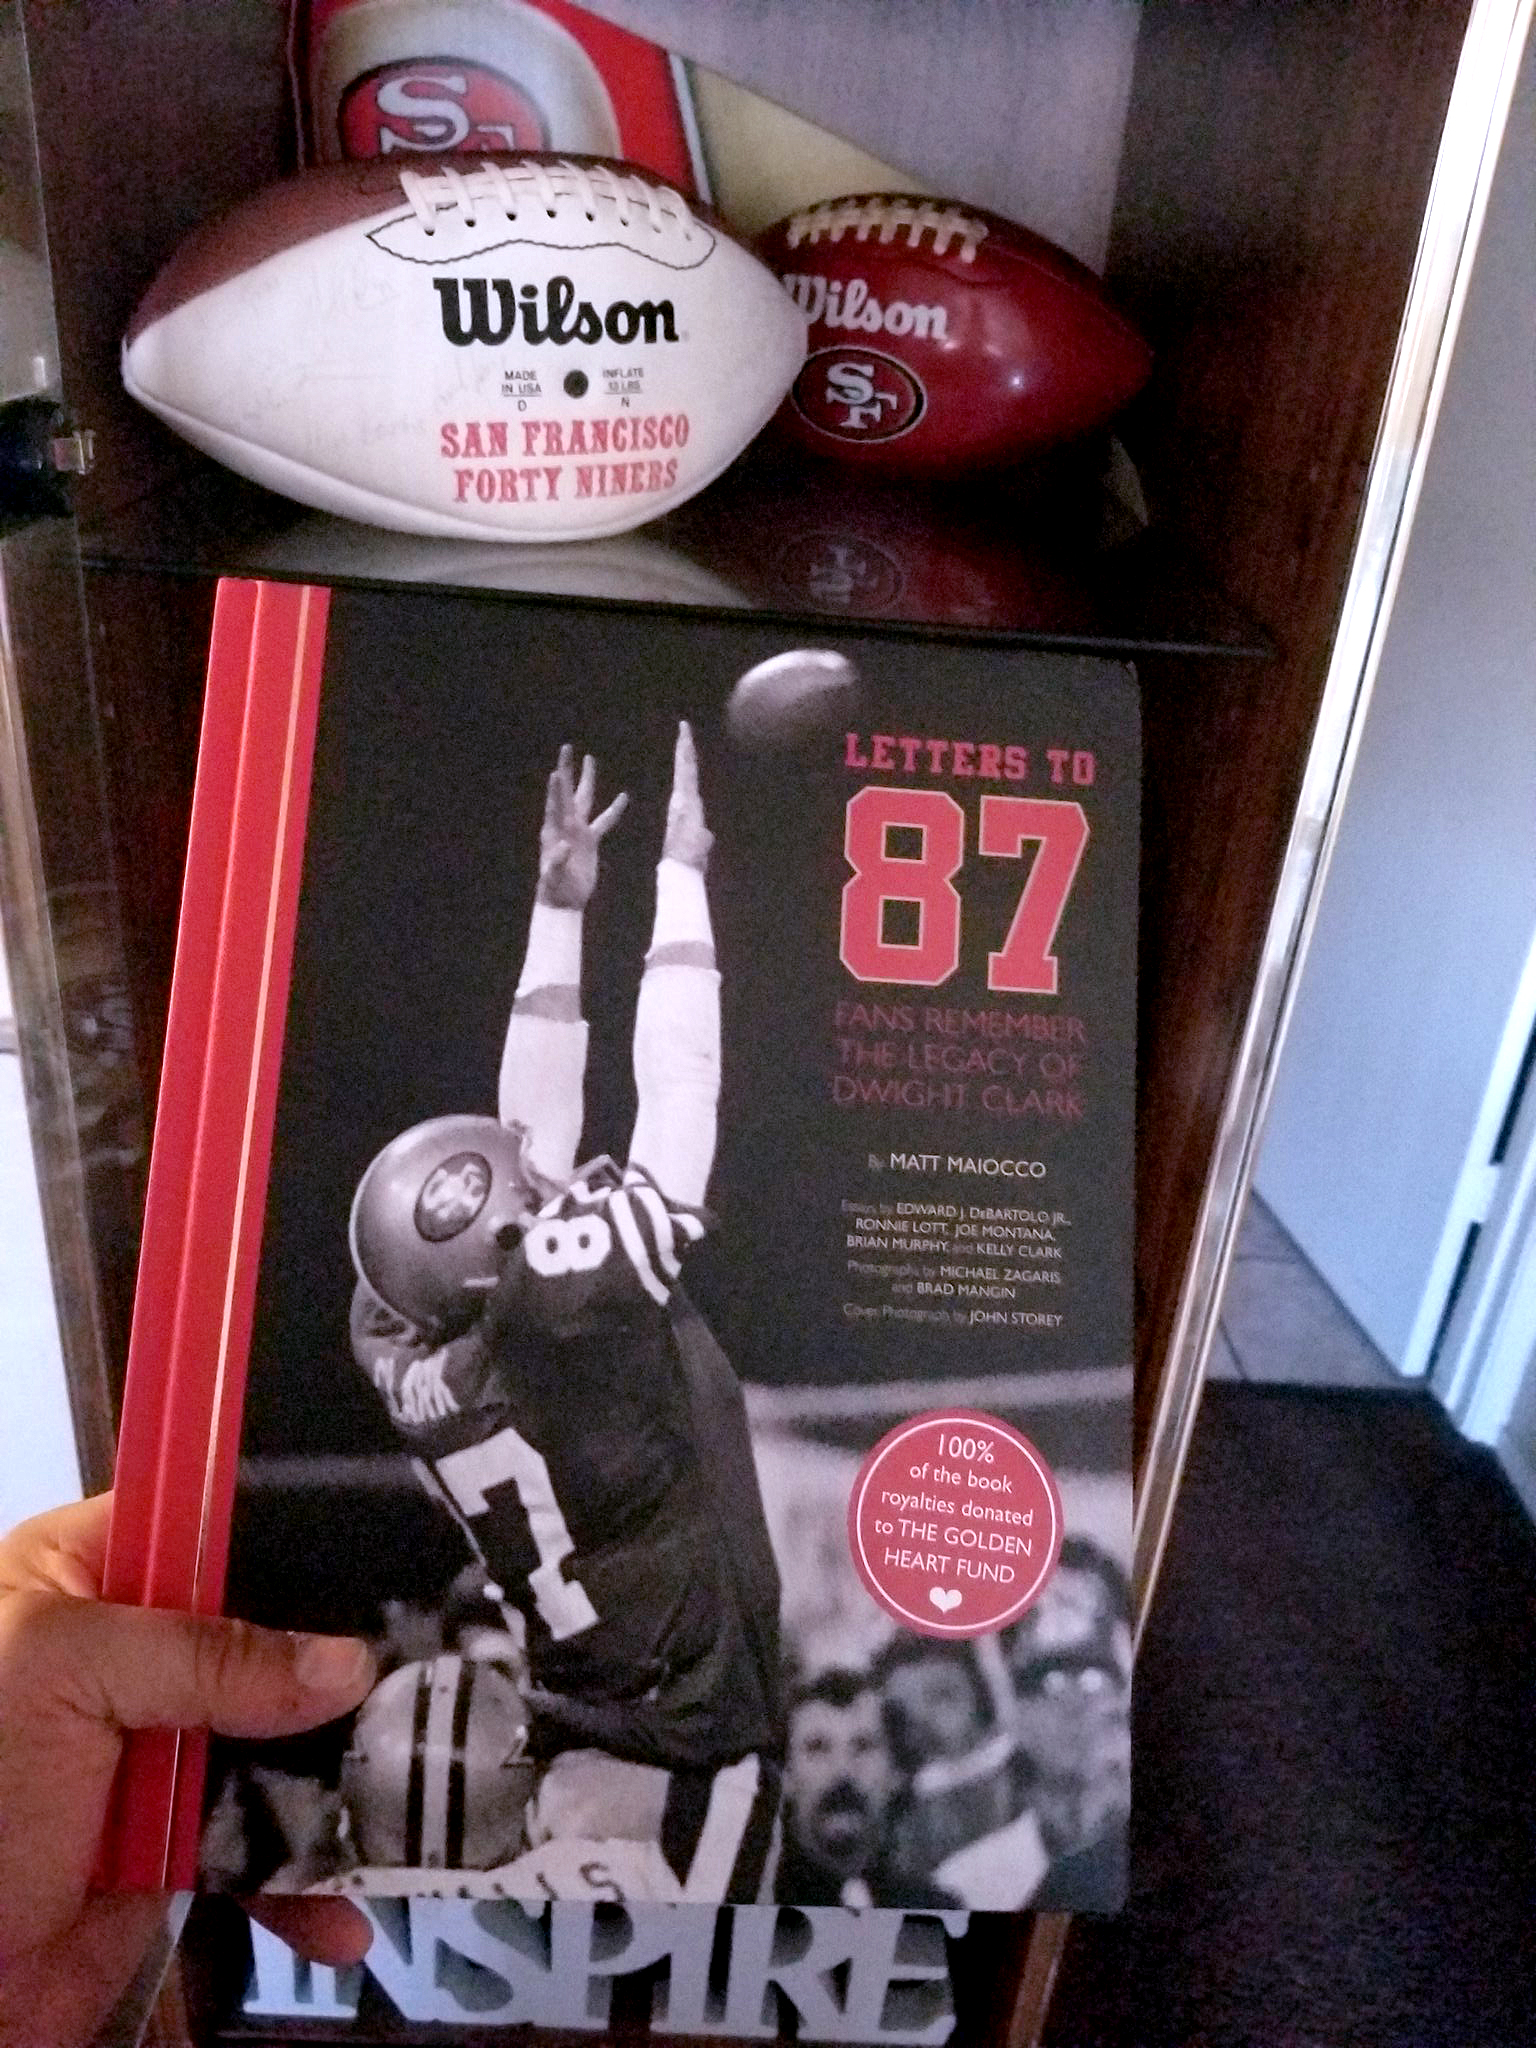 @grexx422 - I received my Letters to 87 book today on 8/7 @MaioccoNBCS.